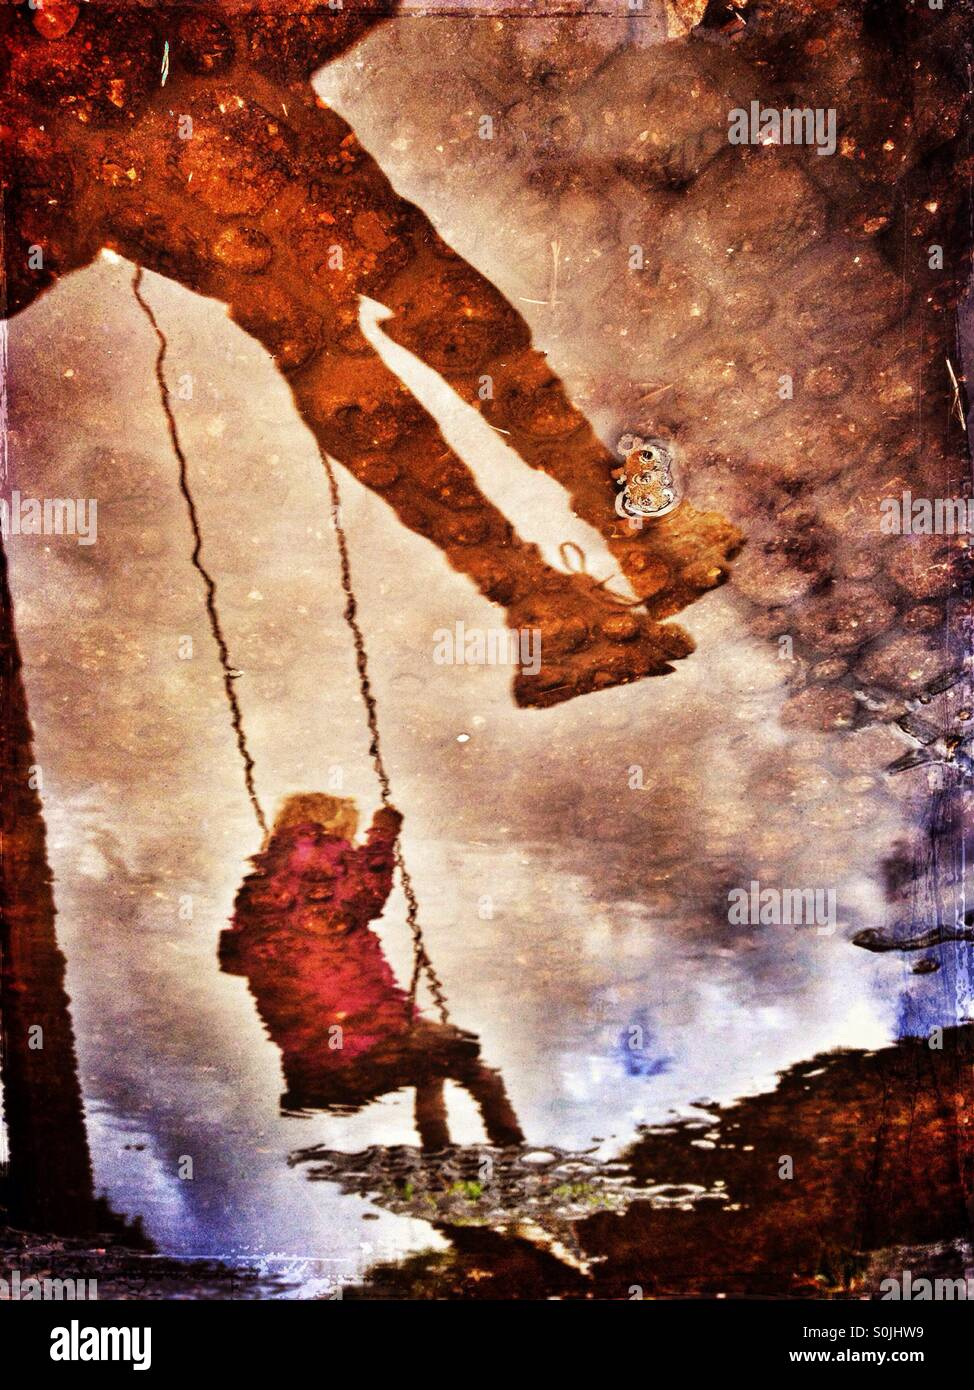 Reflections in muddy puddle of two girls on swings - Stock Image